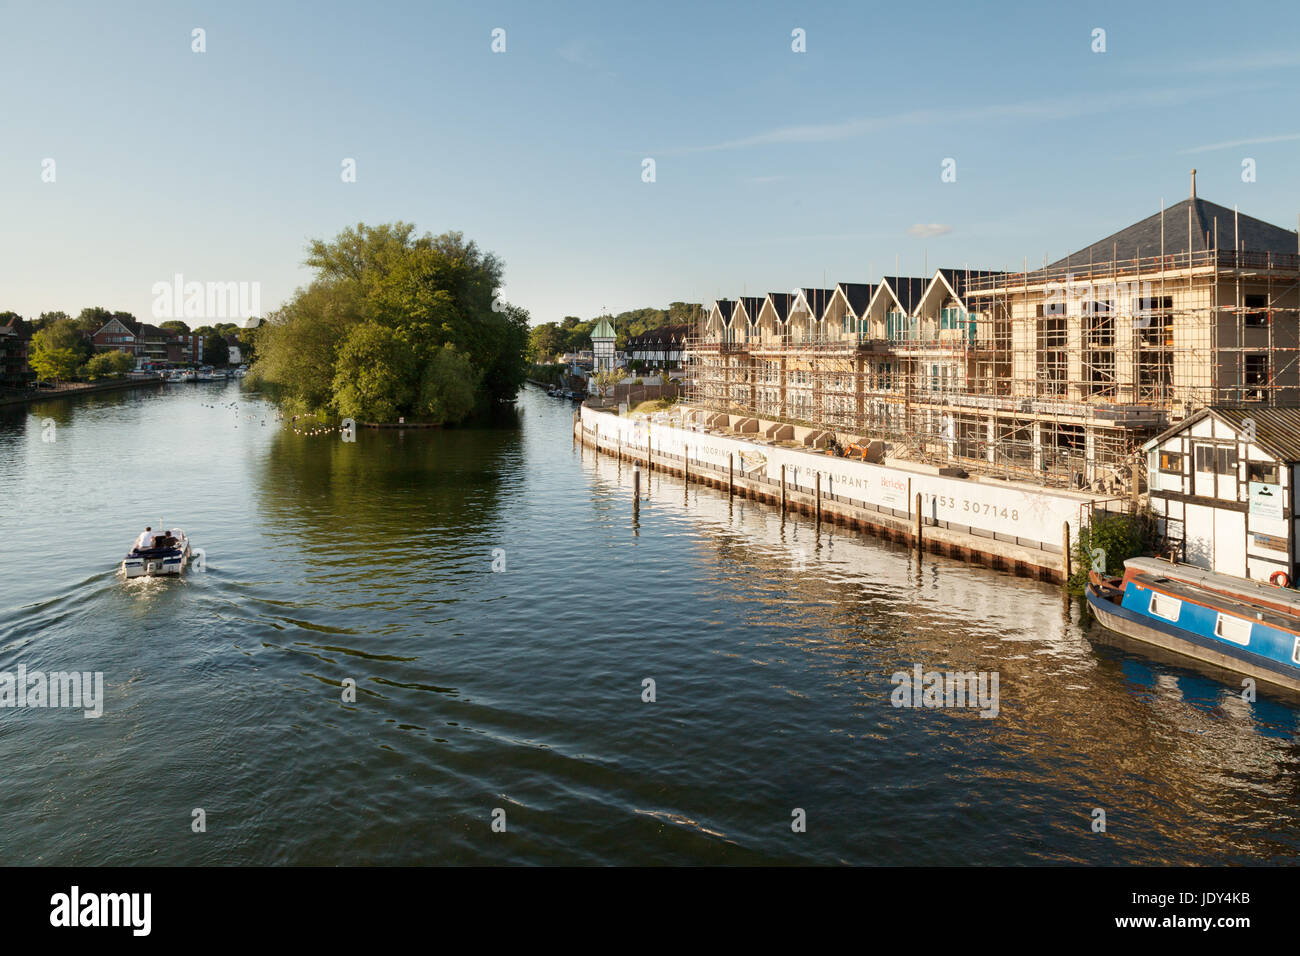 New buildings being built on the banks of the River Thames, Taplow, Buckinghamshire England UK - Stock Image